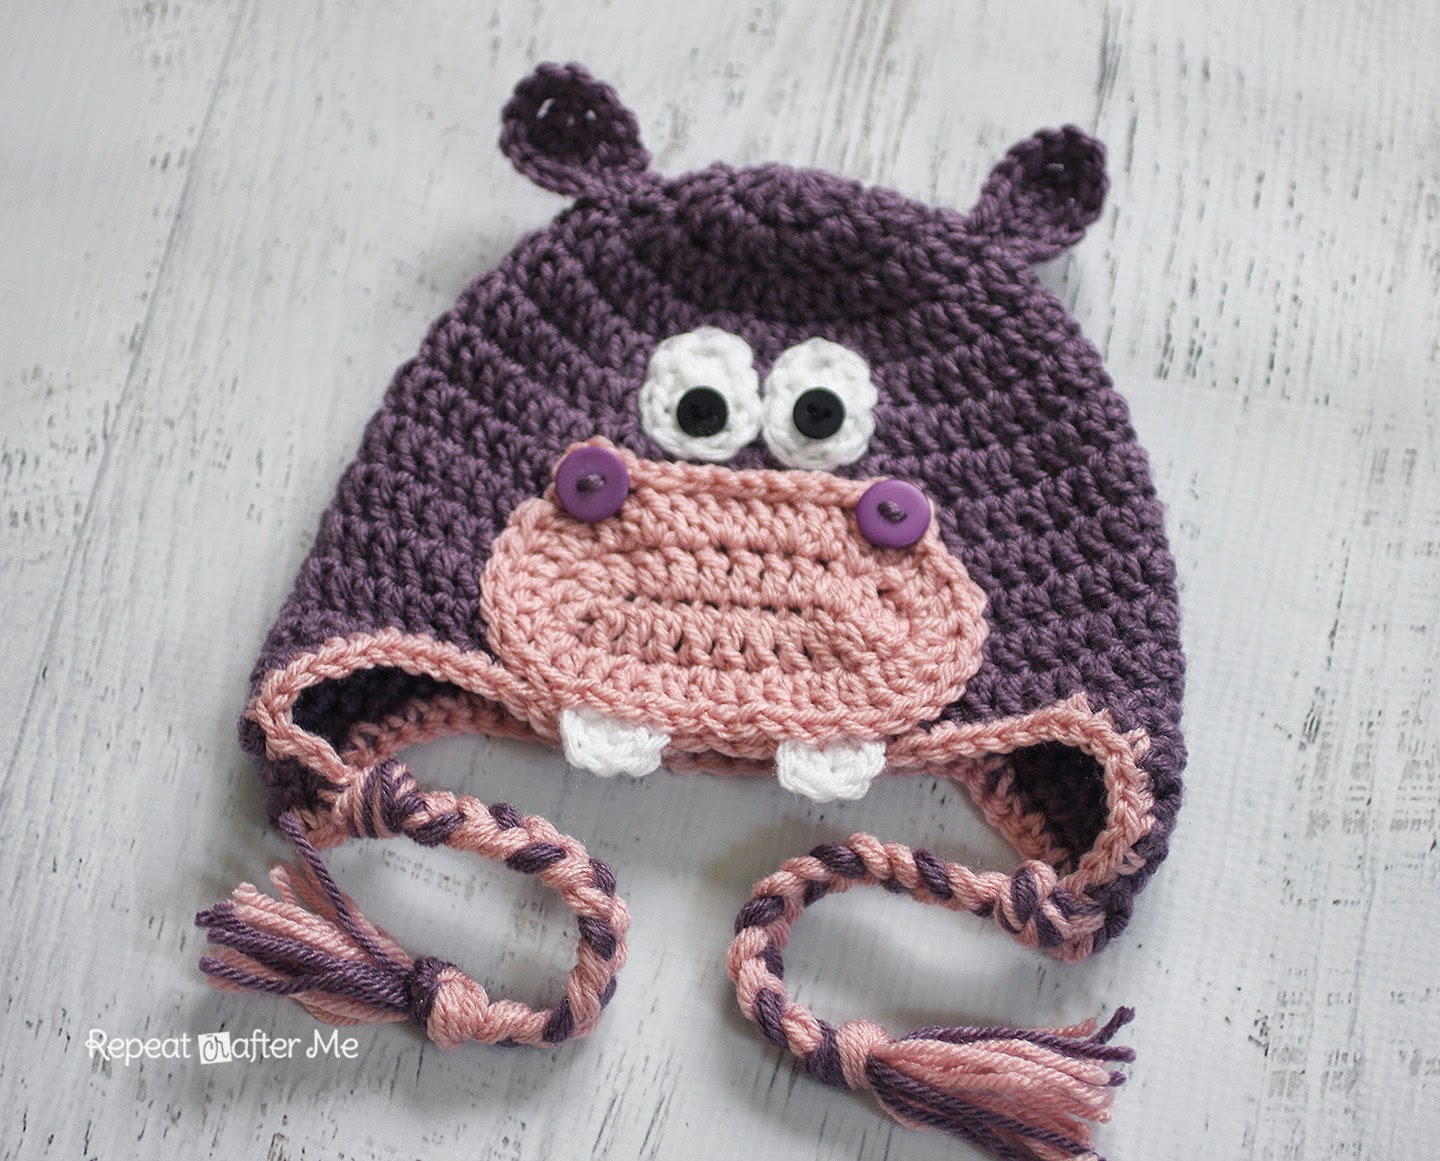 Crochet Pattern Free Hippo : Repeat Crafter Me: Crochet Hippo Hat Pattern